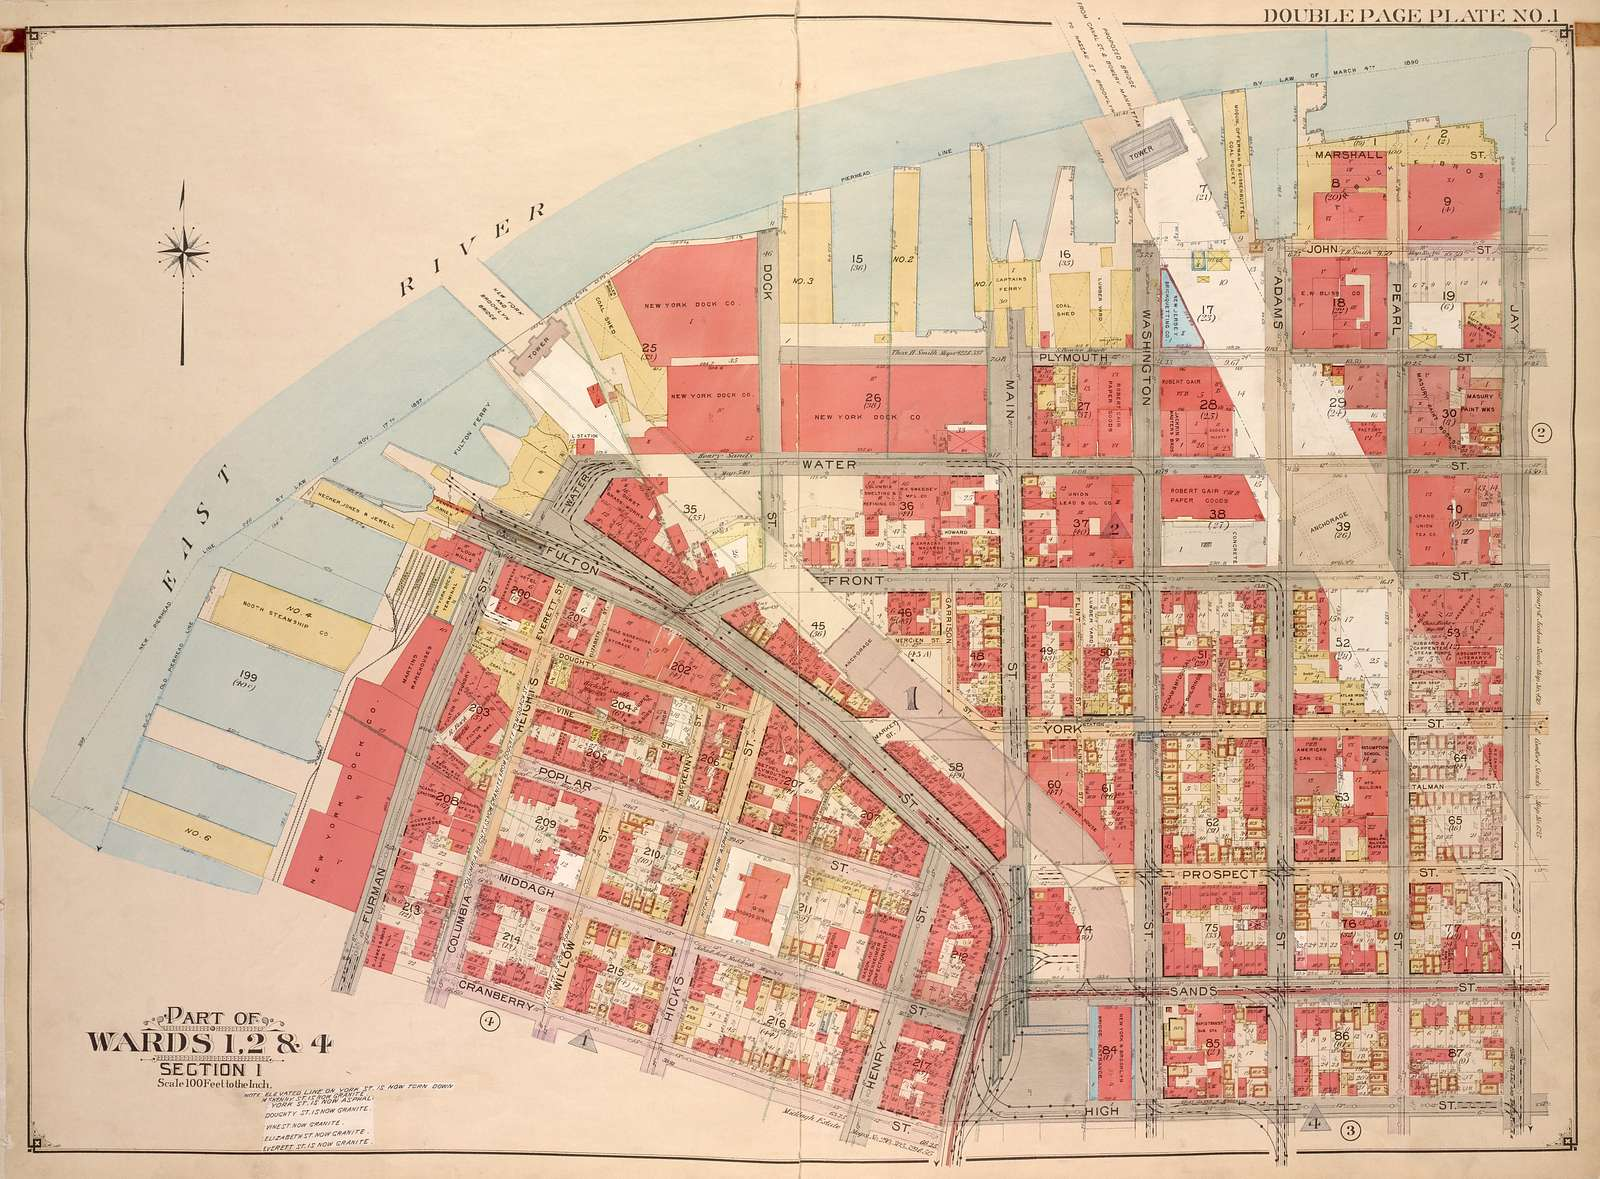 Brooklyn, Vol. 1, Double Page Plate No. 1; Part of Wards 1, 2 & 4, Section 1; [Map bounded by Plymouth St., Marshall St., John St., Jay St., High St.; Including Cranberry St., Furman St., Fulton St., Water St., Dock St.]